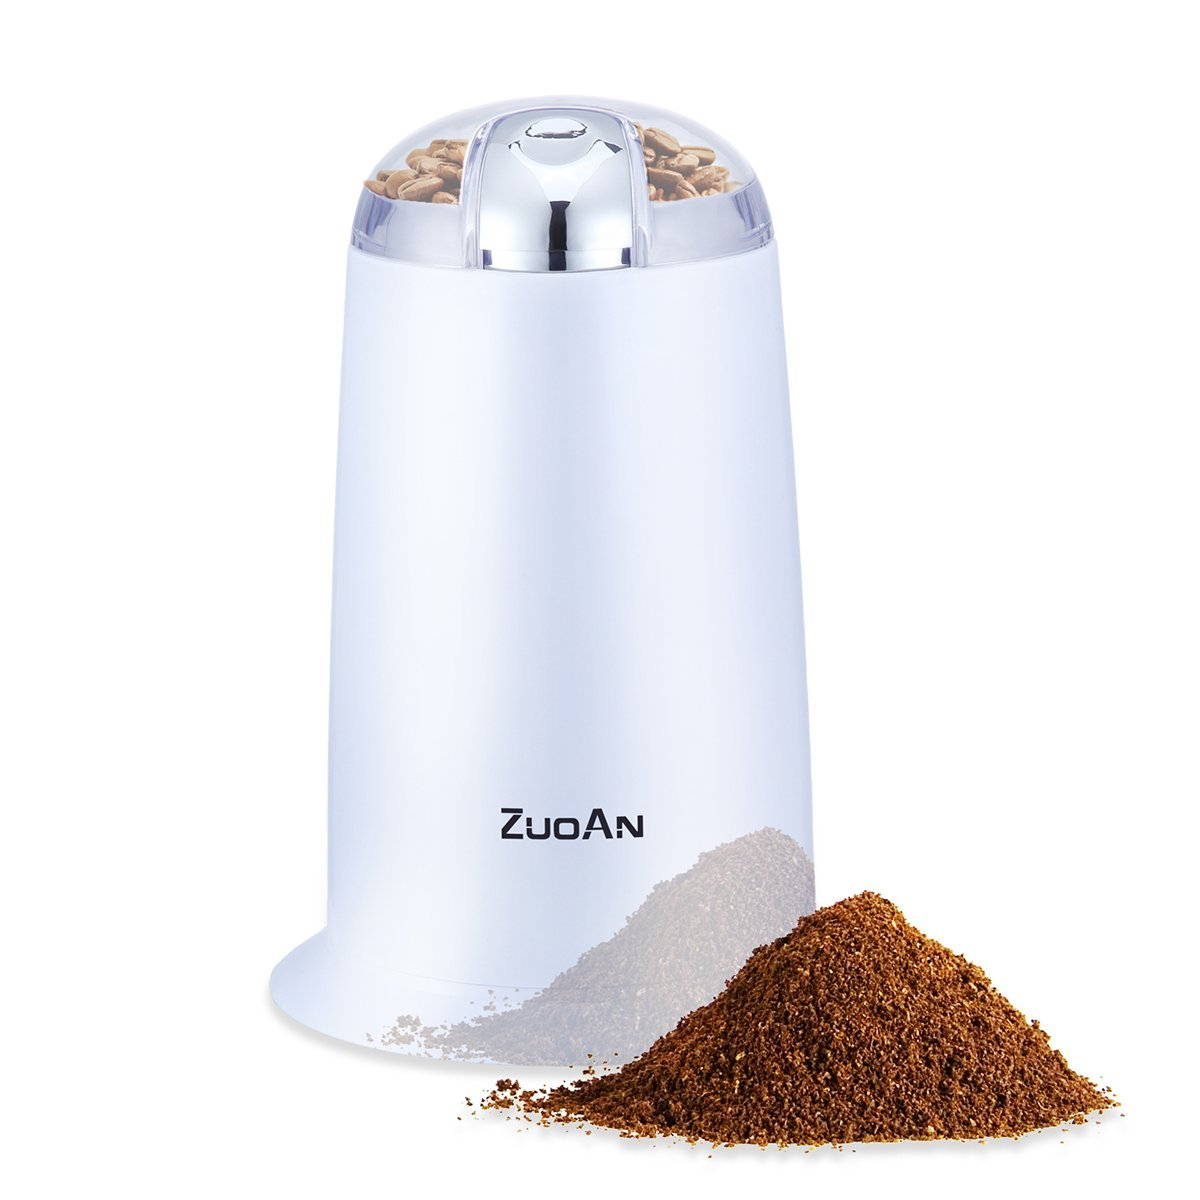 Coffee Grinder,Automatic Premium Electric Grinder,ZUOAN,with Cleaning Brush,Super Powerful 140W Motor,and 6 Seconds Quick Grinding for Coffee Beans, Spices, Nuts and Grains etc